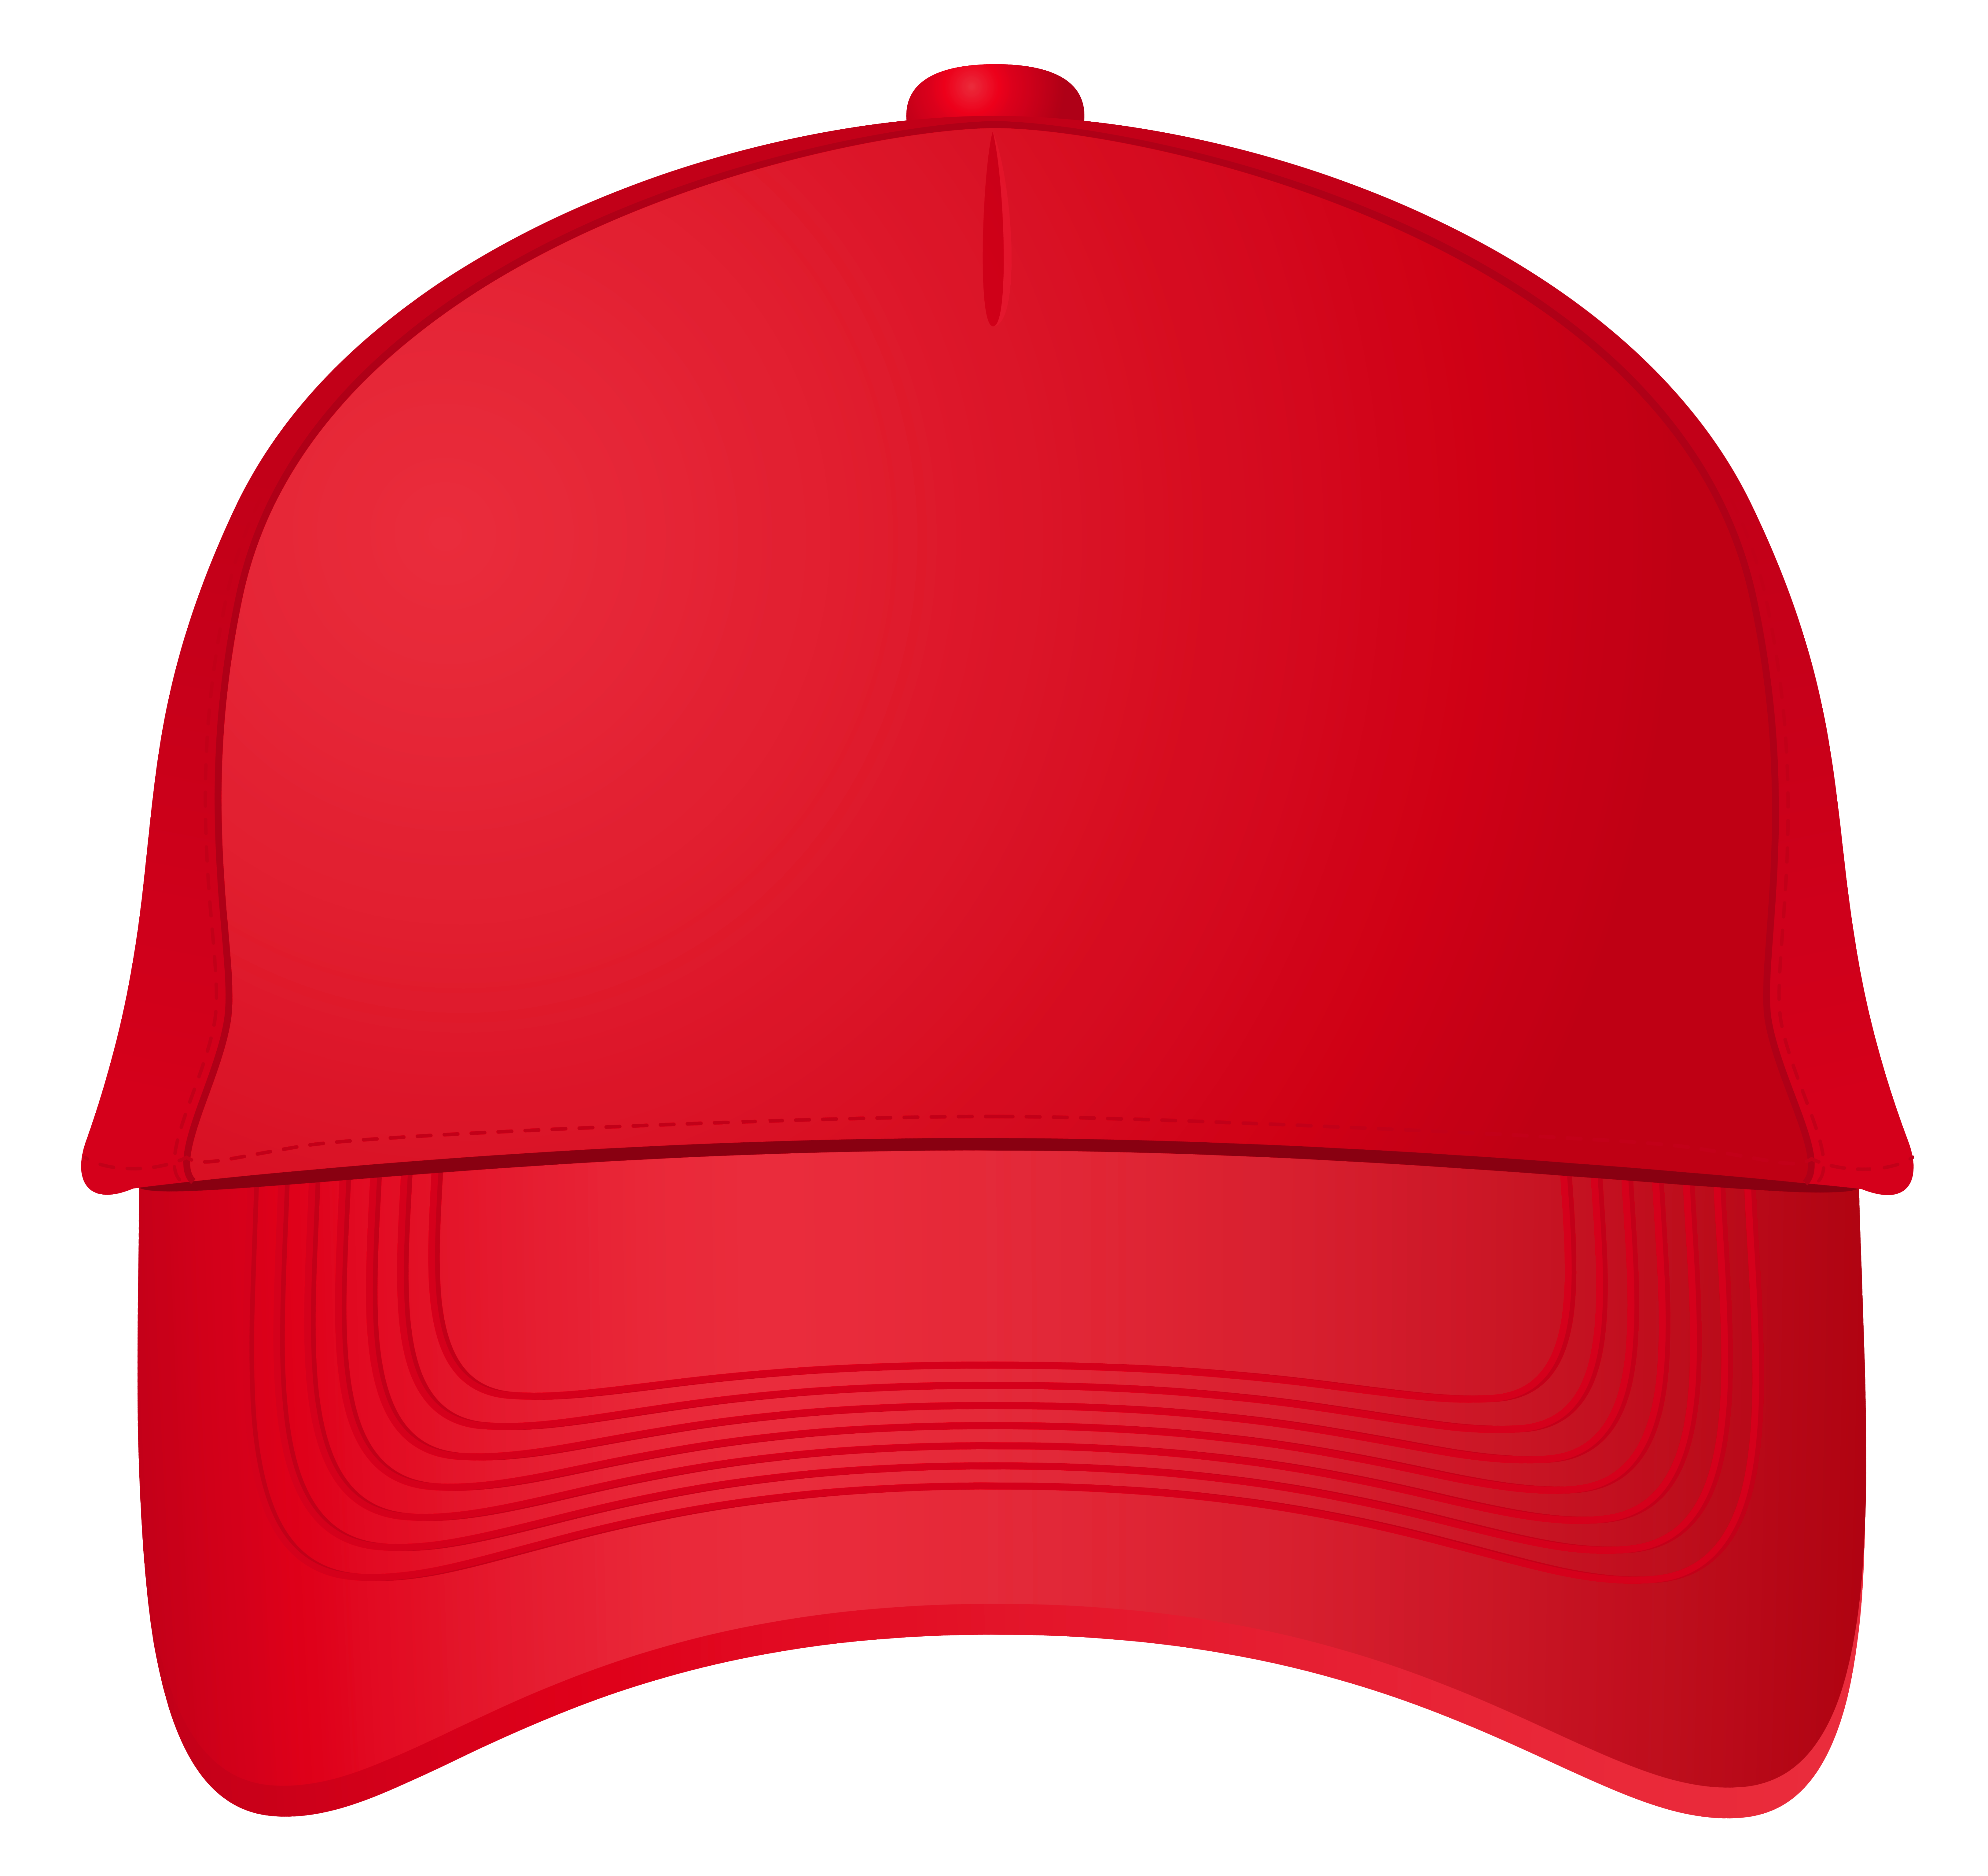 6505x6137 Red Baseball Cap Png Clipart